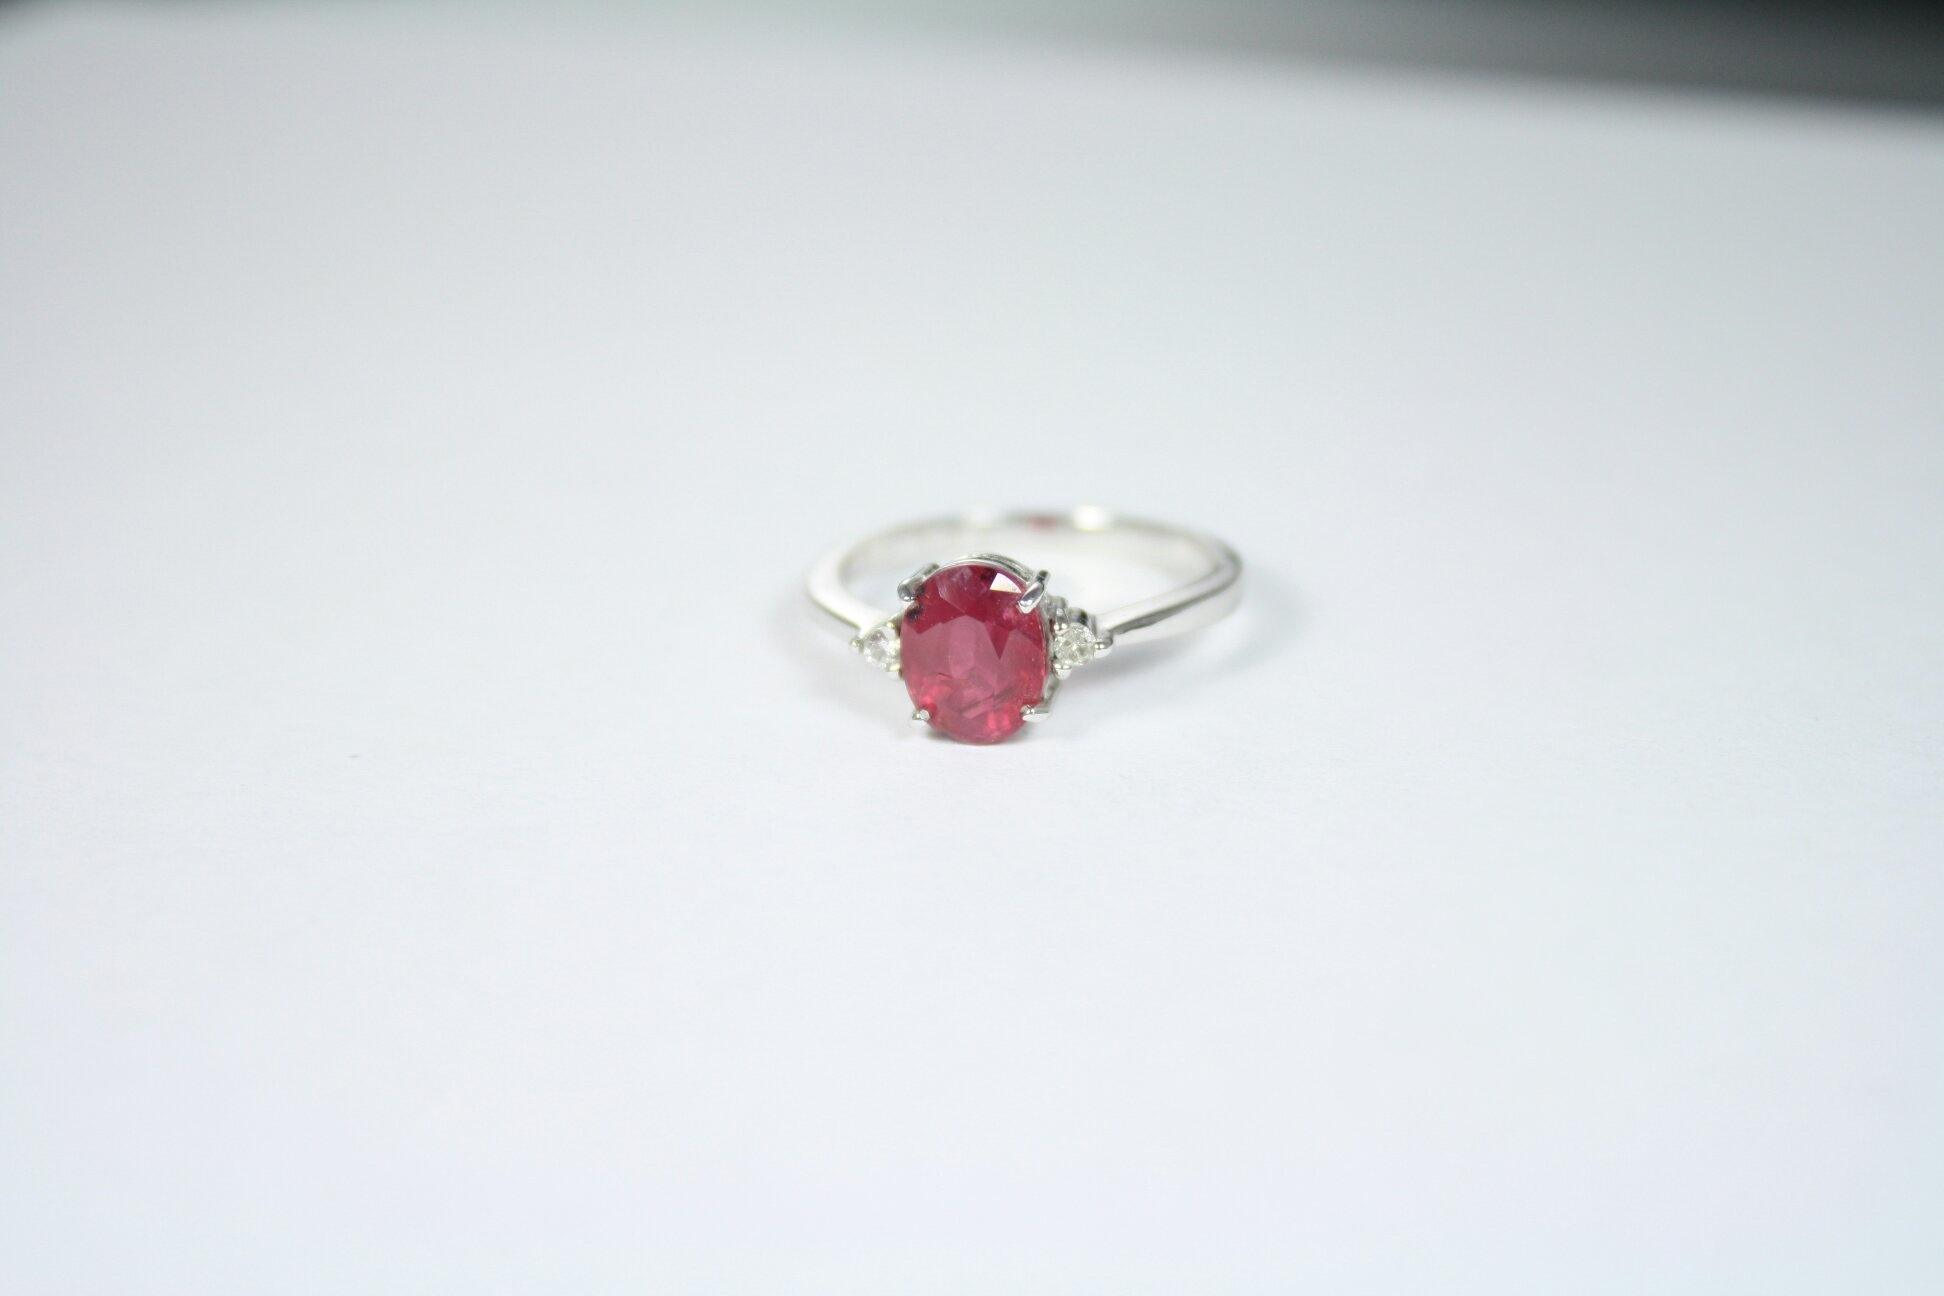 How much is one carat of ruby? - Quora